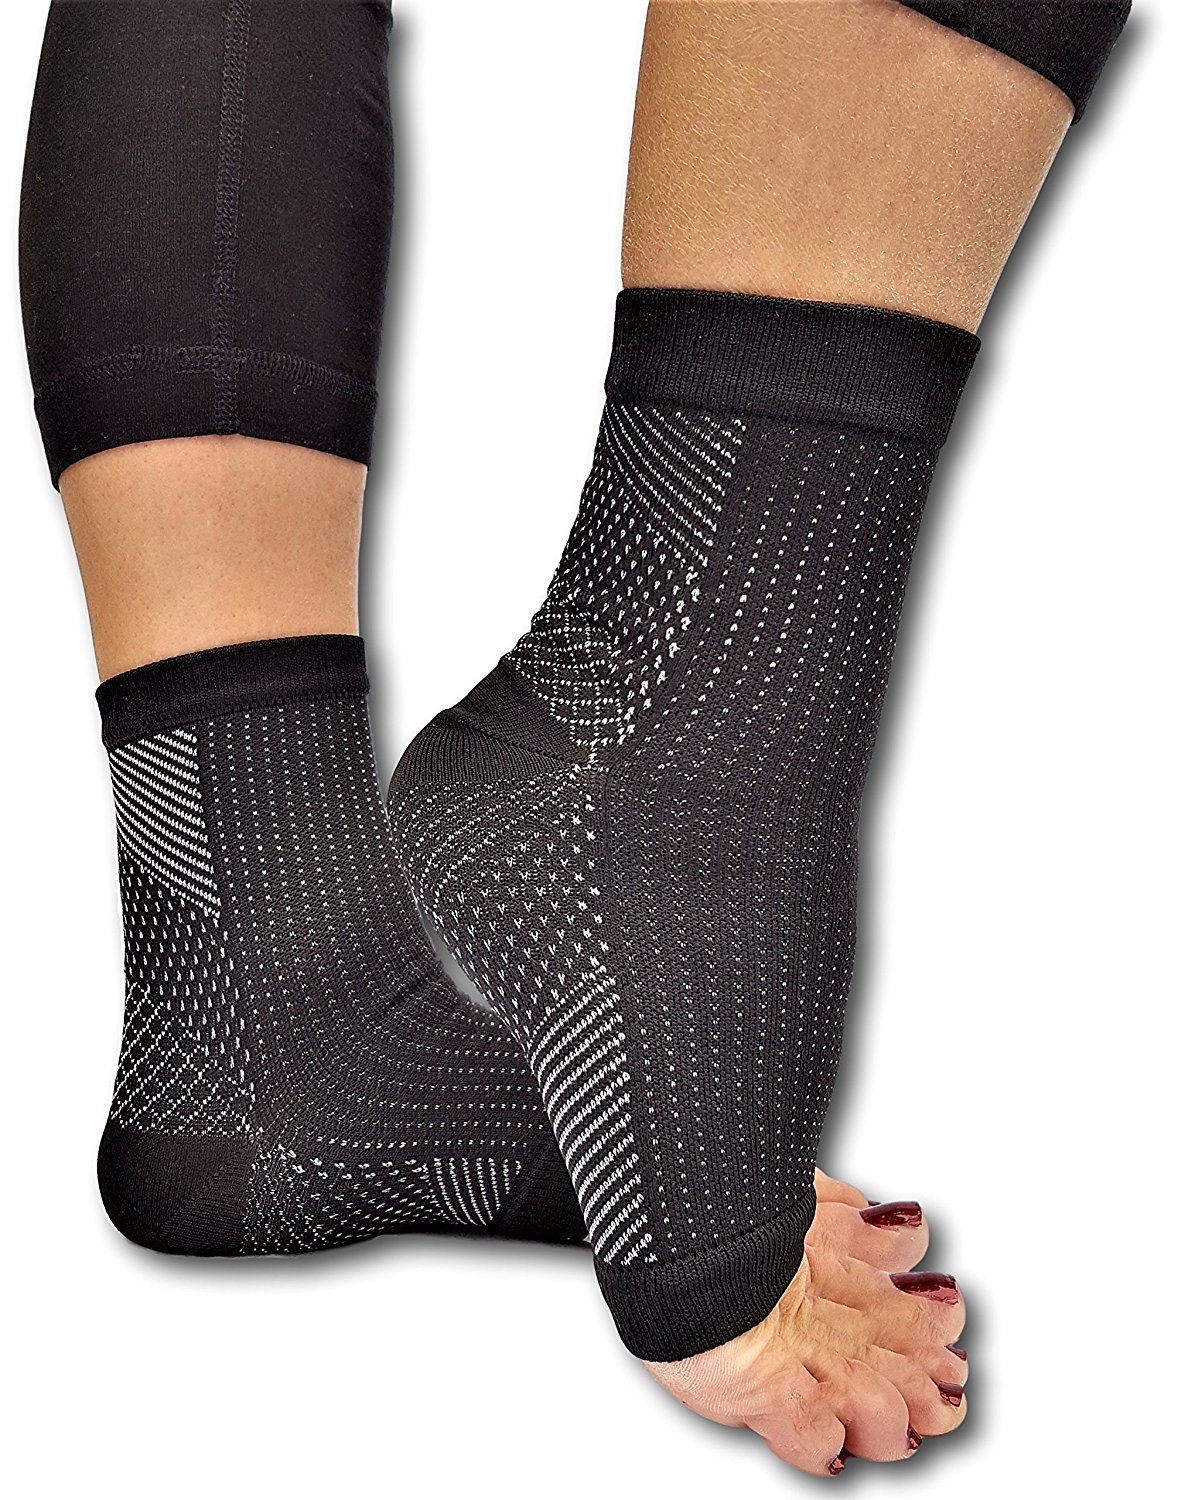 c40fc769f7 Get Quotations · Lumenon 2 pairs Plantar Fasciitis Socks with Arch Support  Eases Swelling & Heel Spurs, Ankle